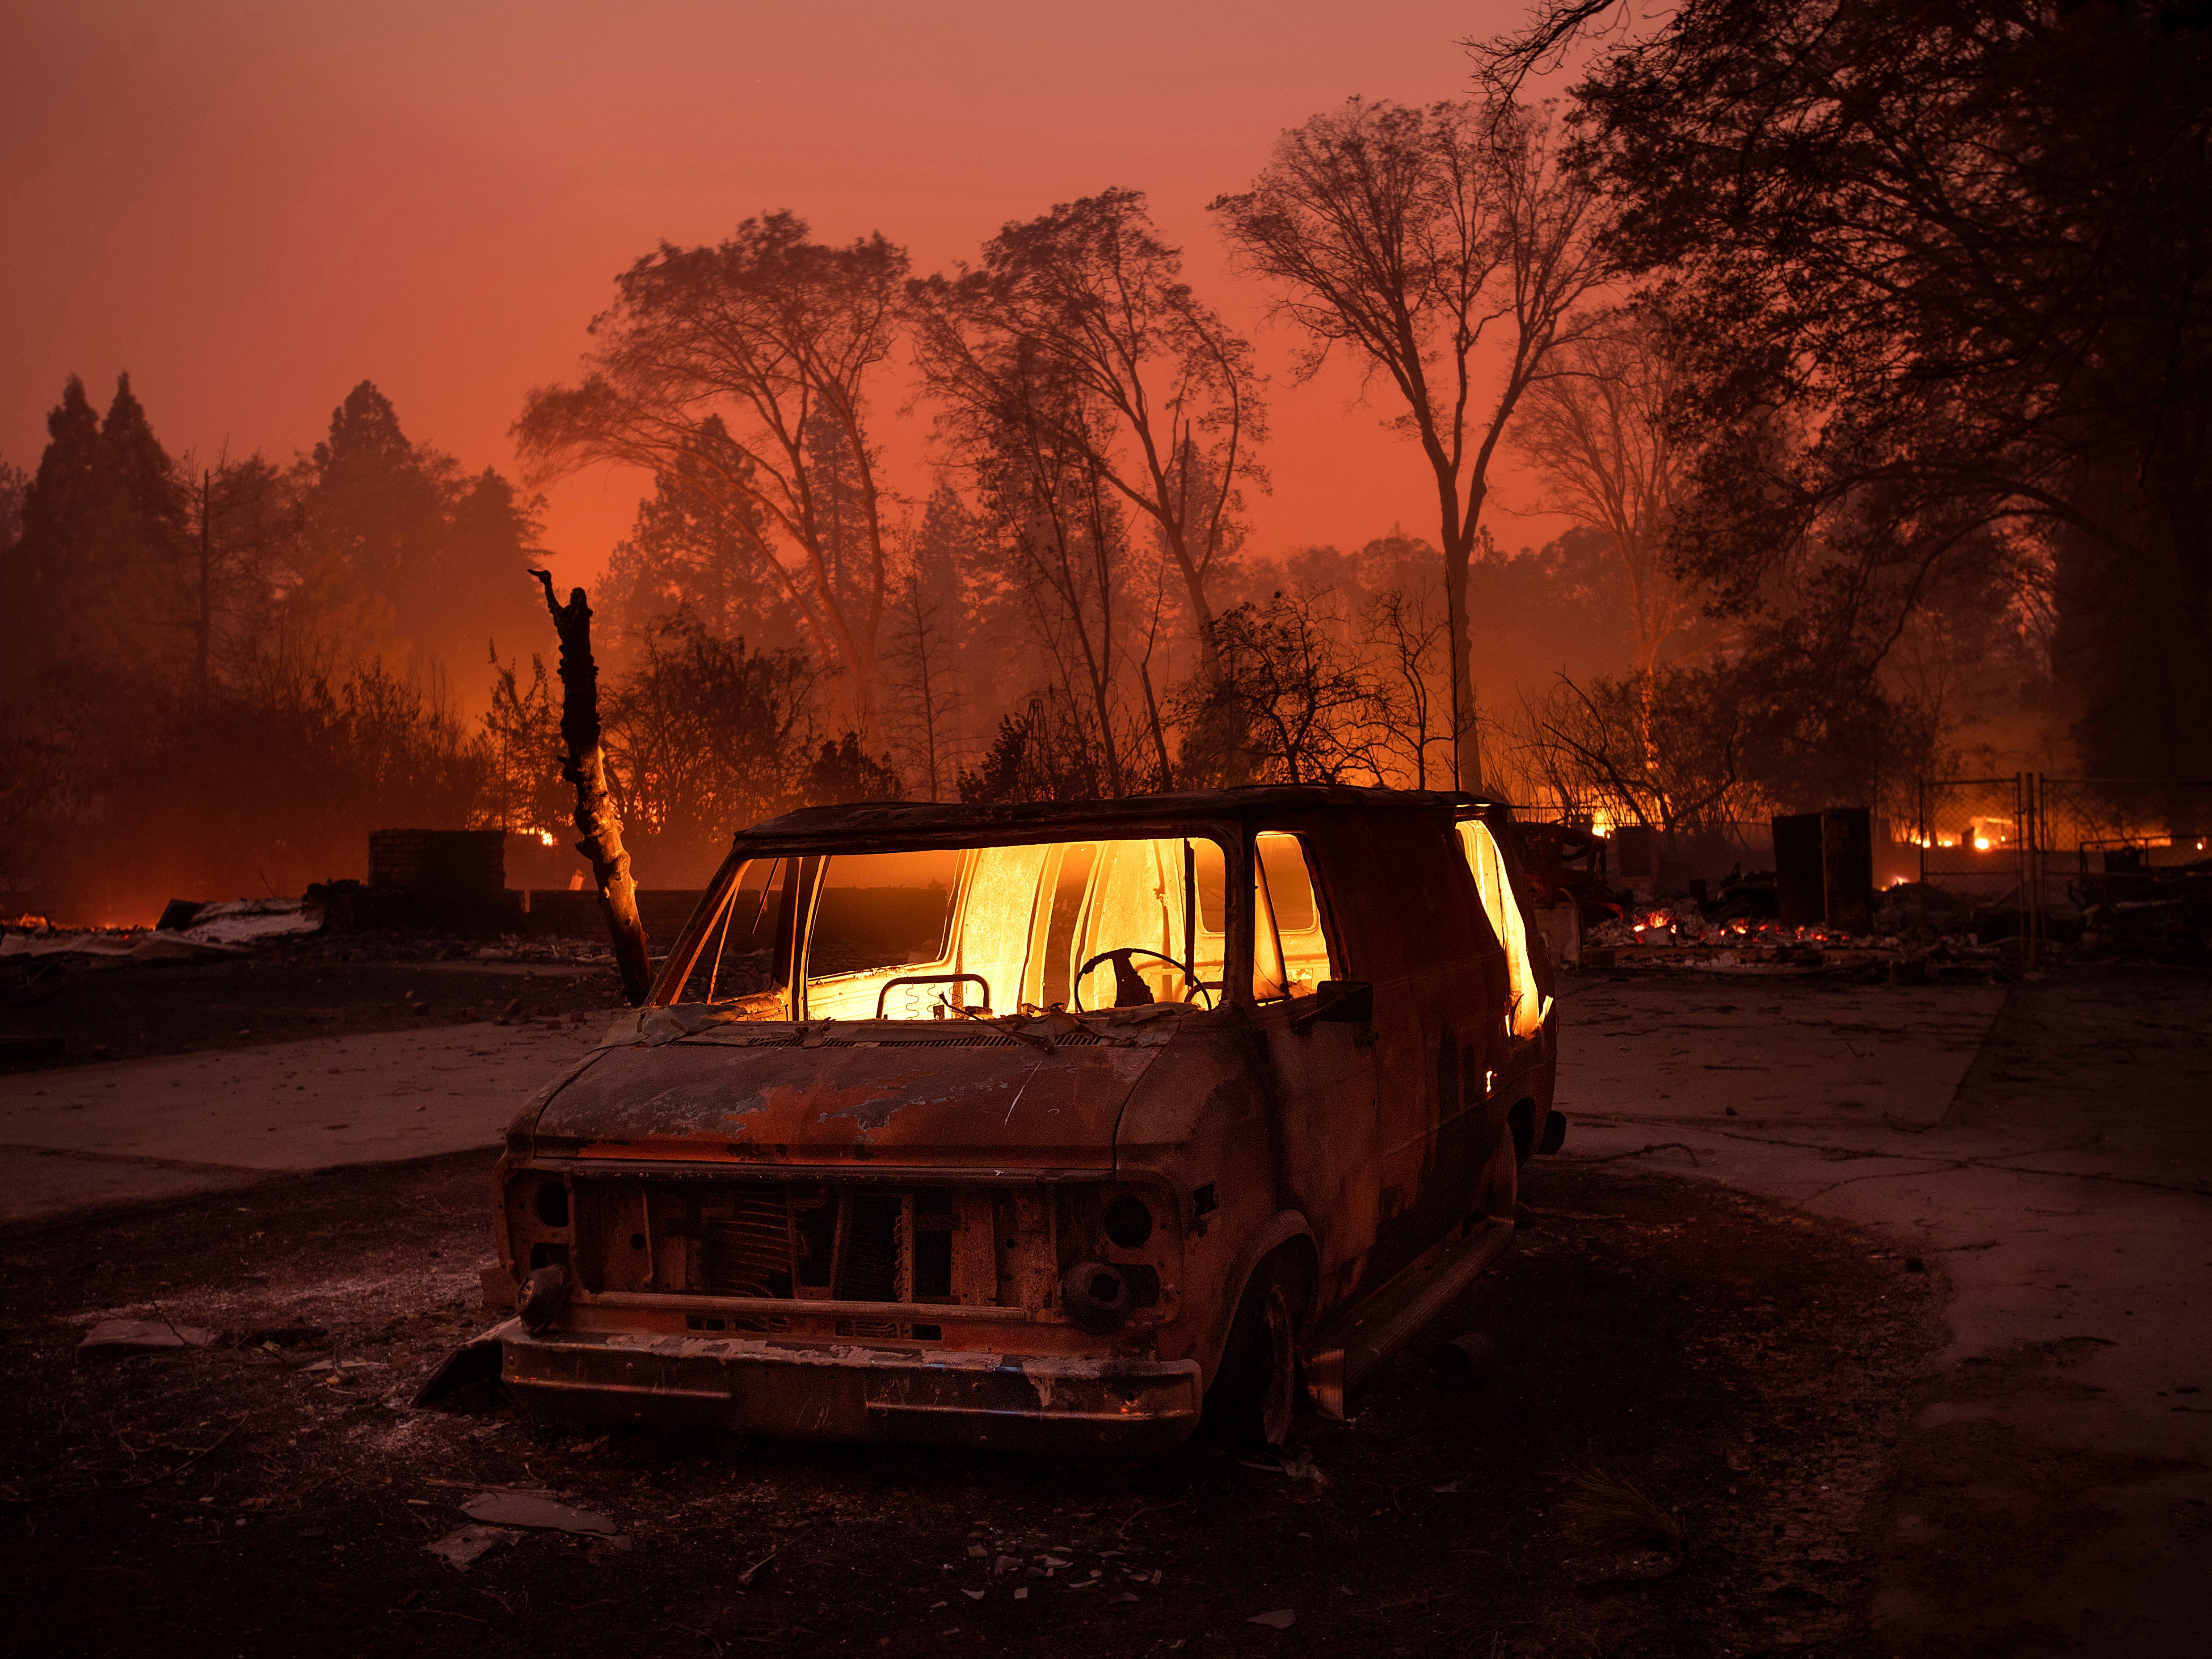 Flames burn inside a van as the Camp Fire tears through Paradise, Calif., on Nov. 8, 2018. Tens of thousands of people fled a fast-moving wildfire, some clutching babies and pets as they abandoned vehicles and struck out on foot ahead of the flames that forced the evacuation of an entire town and destroyed hundreds of structures.